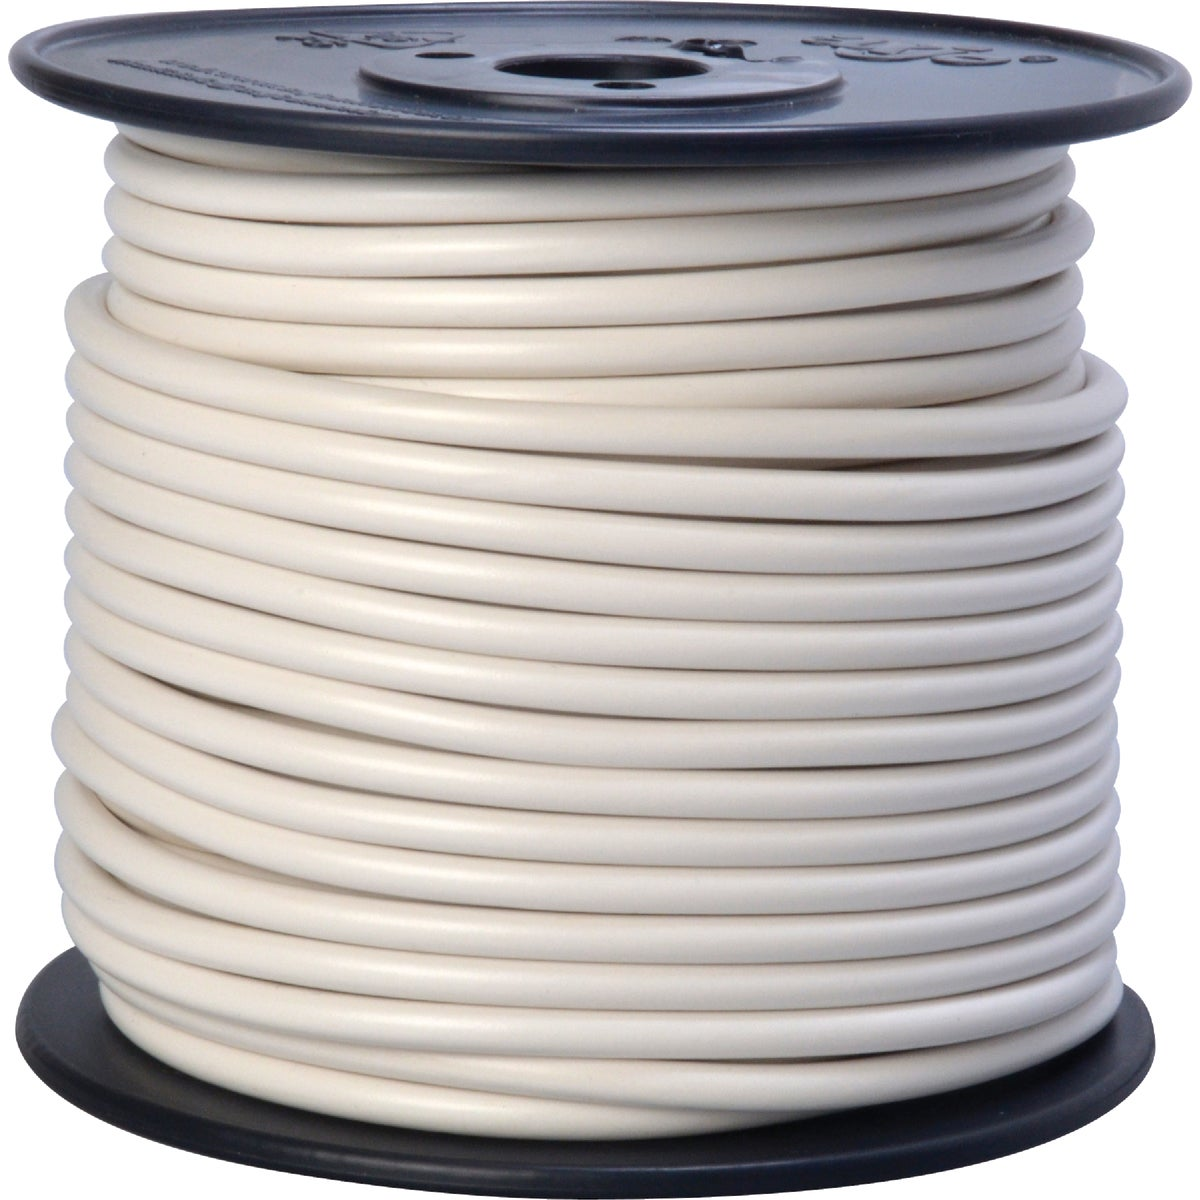 100' 10GA WHT AUTO WIRE - 10-100-17 by Woods Wire Coleman